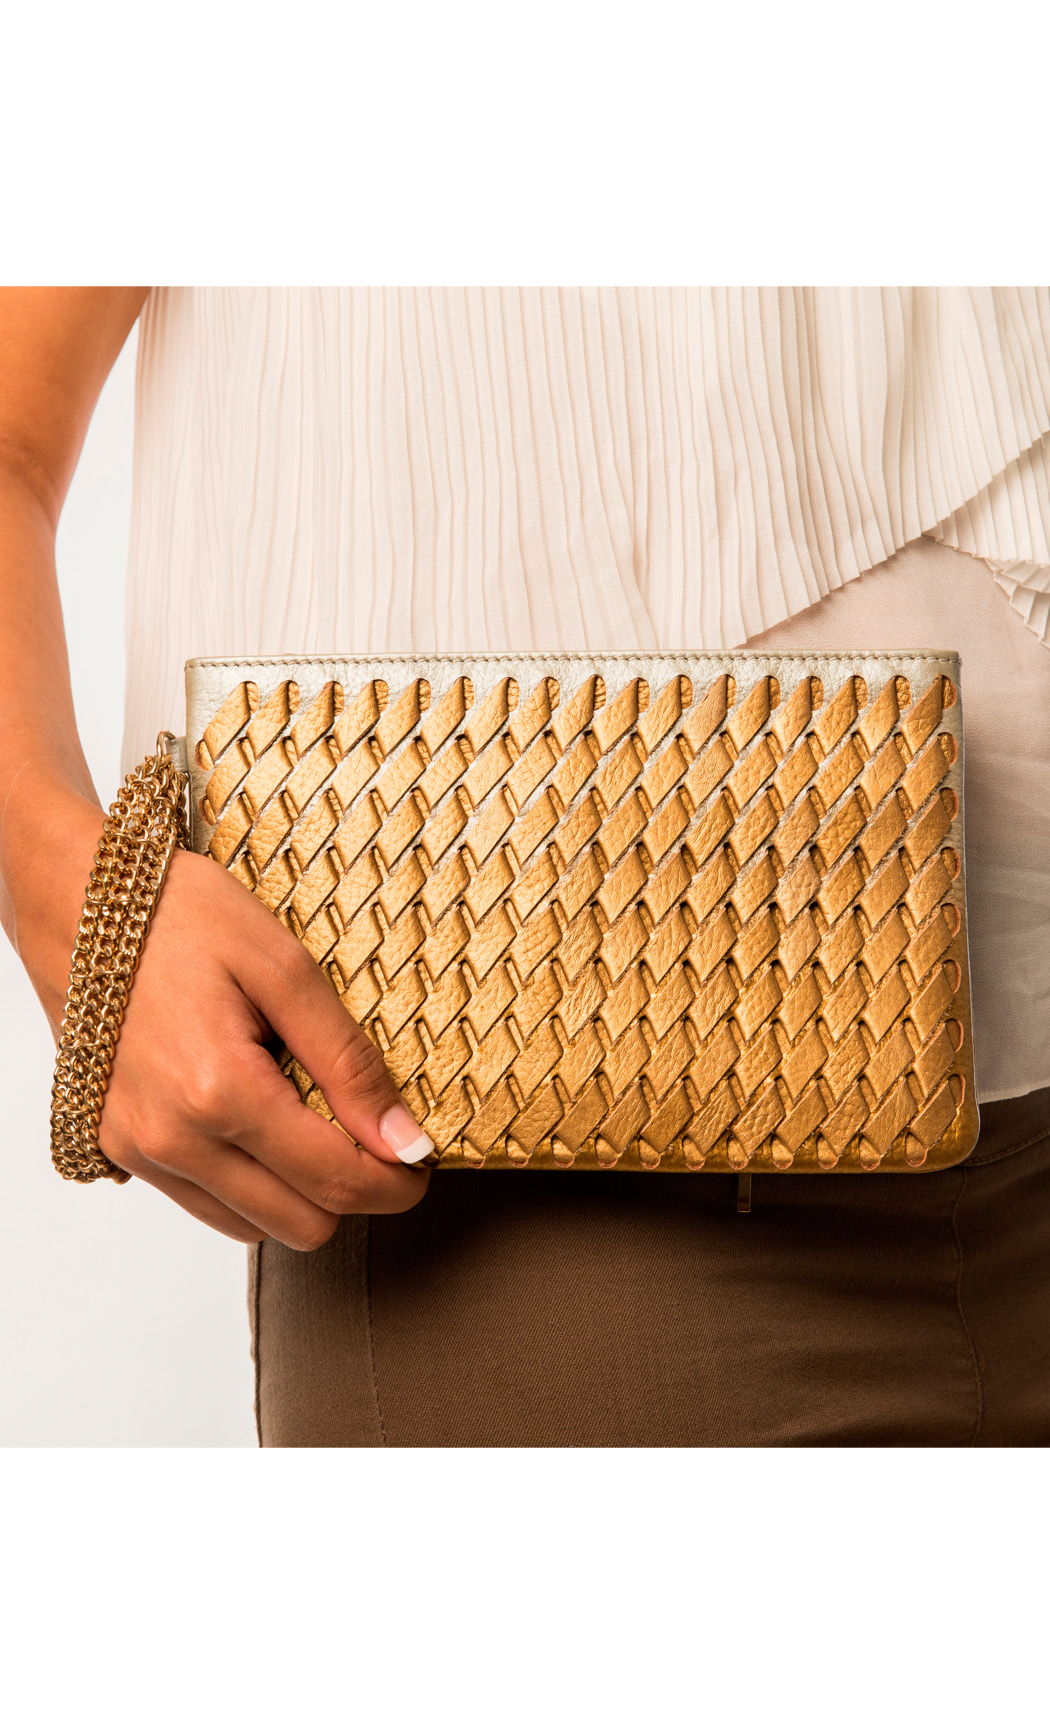 Symphony and Symmetry Long weave Wristlet in Gold-Silver. Buy Online